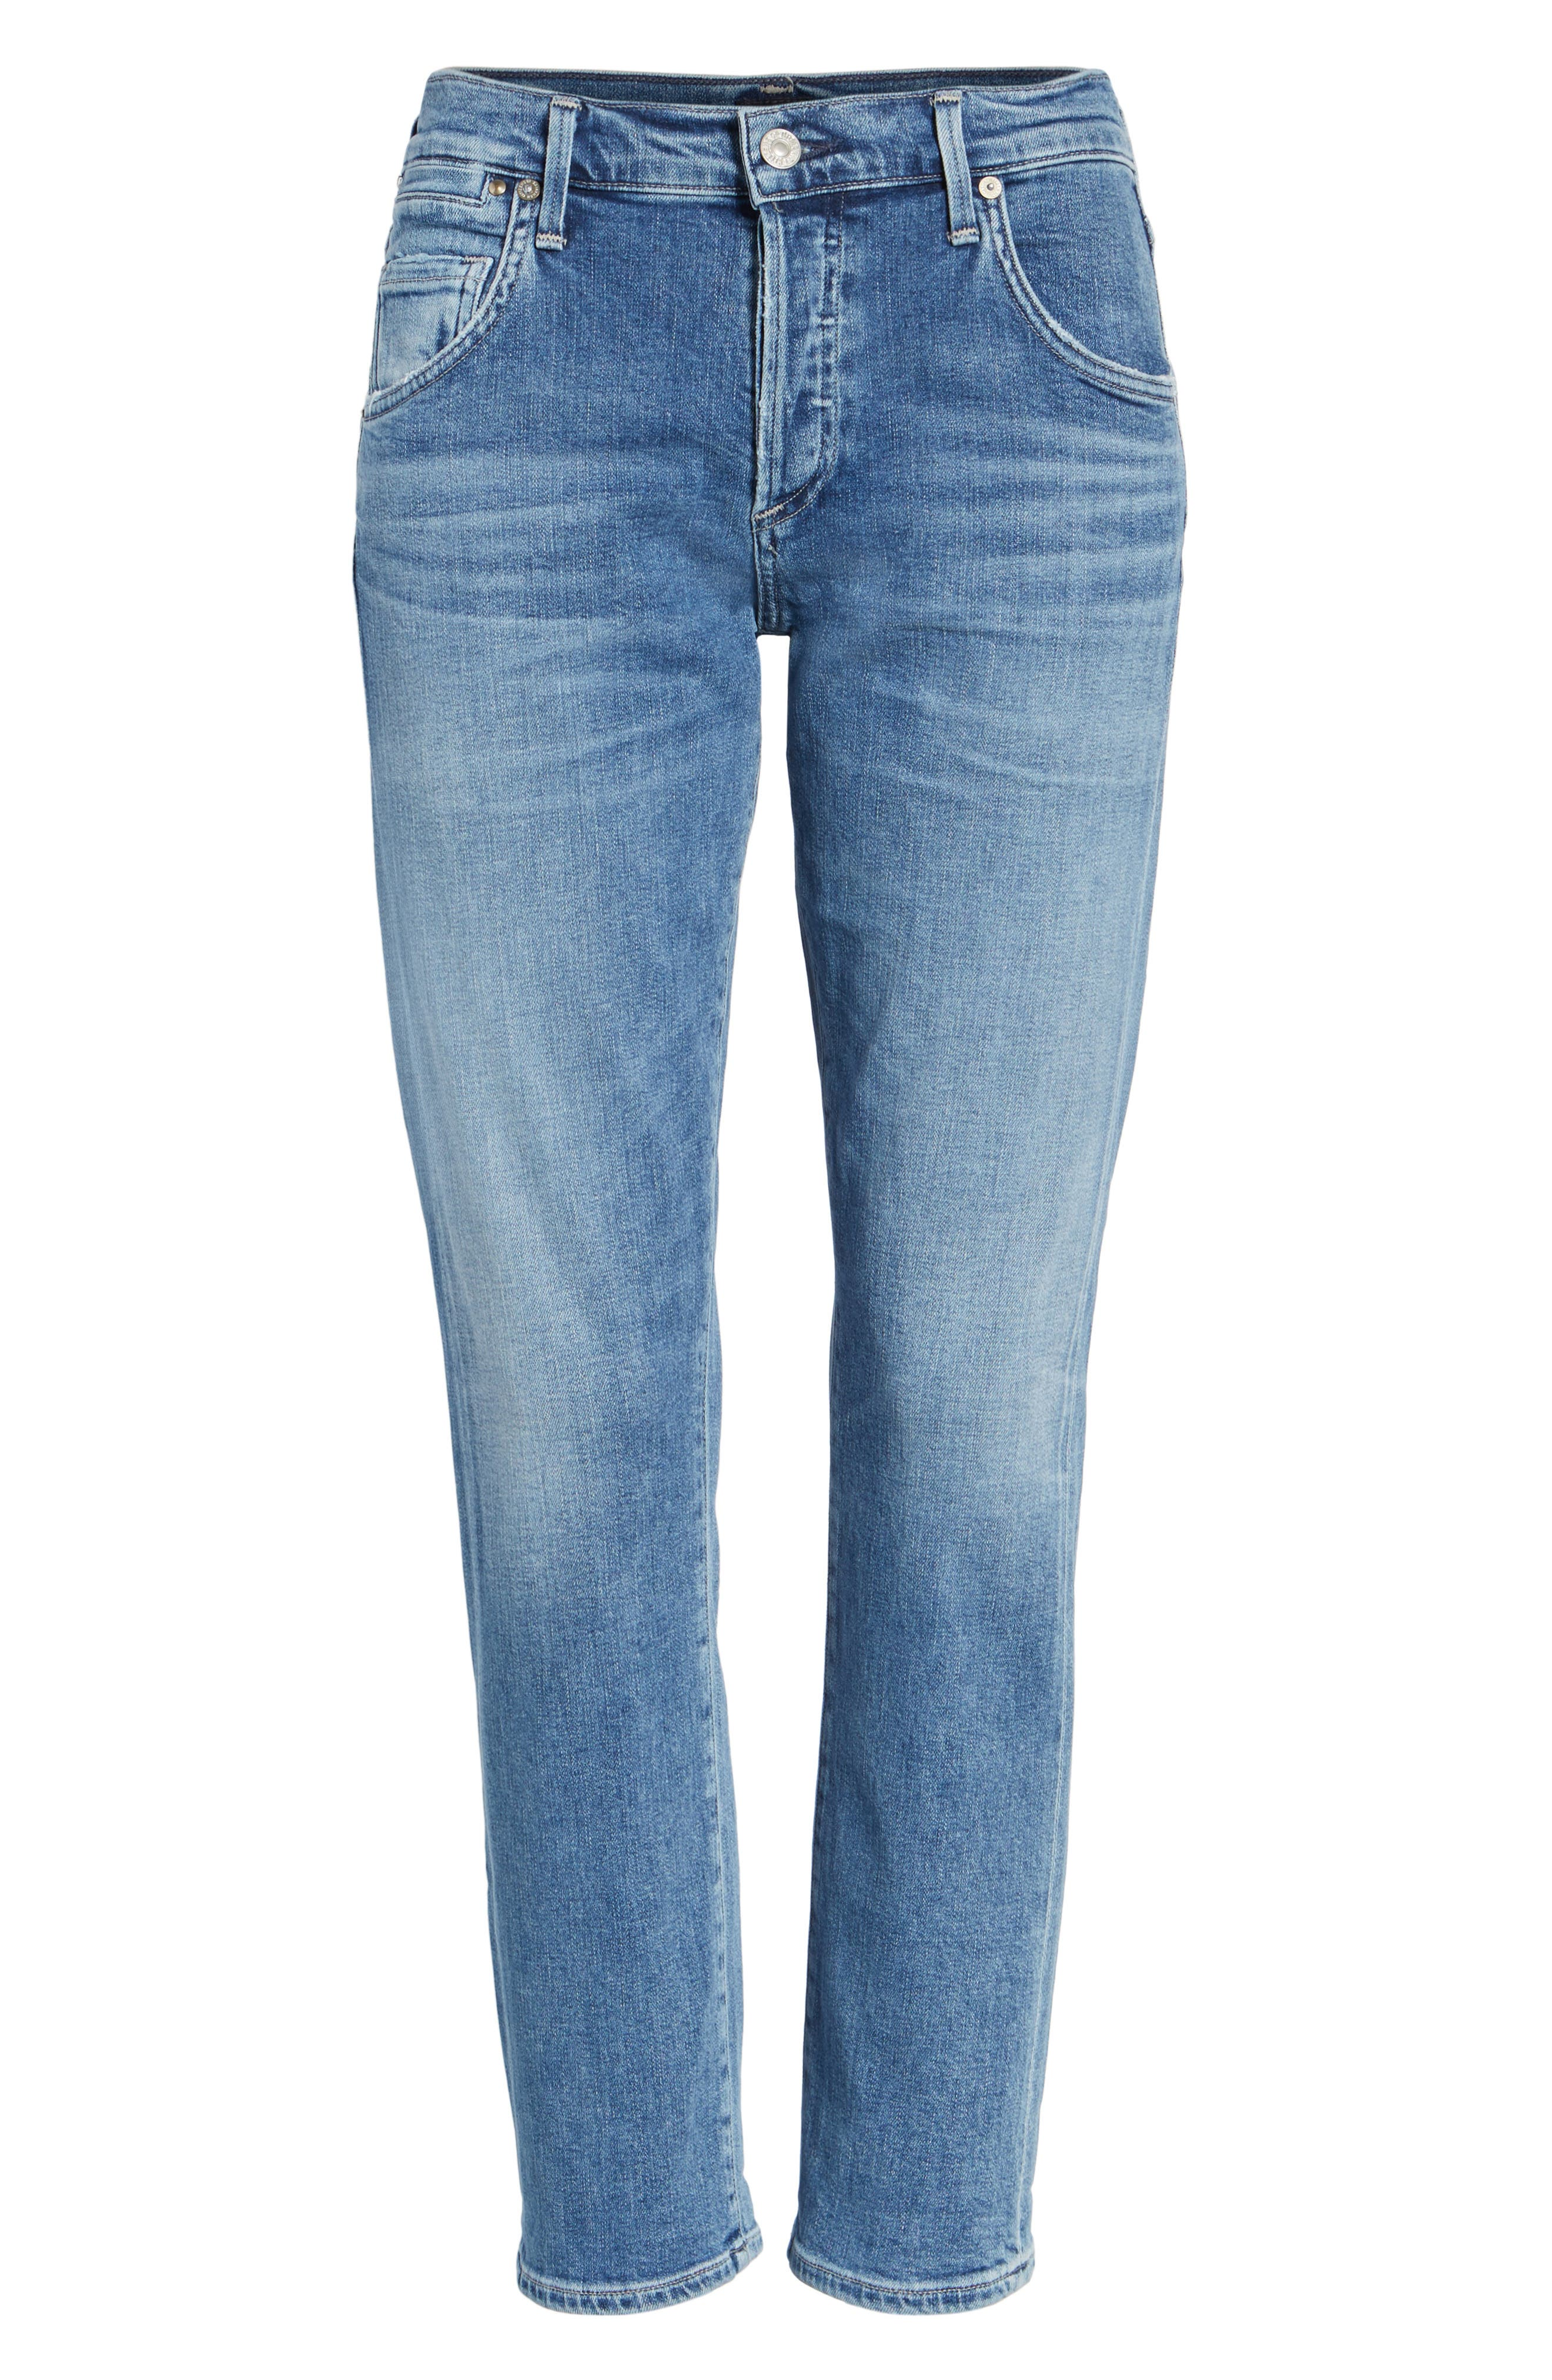 Emerson Slim Boyfriend Jeans,                             Alternate thumbnail 6, color,                             424